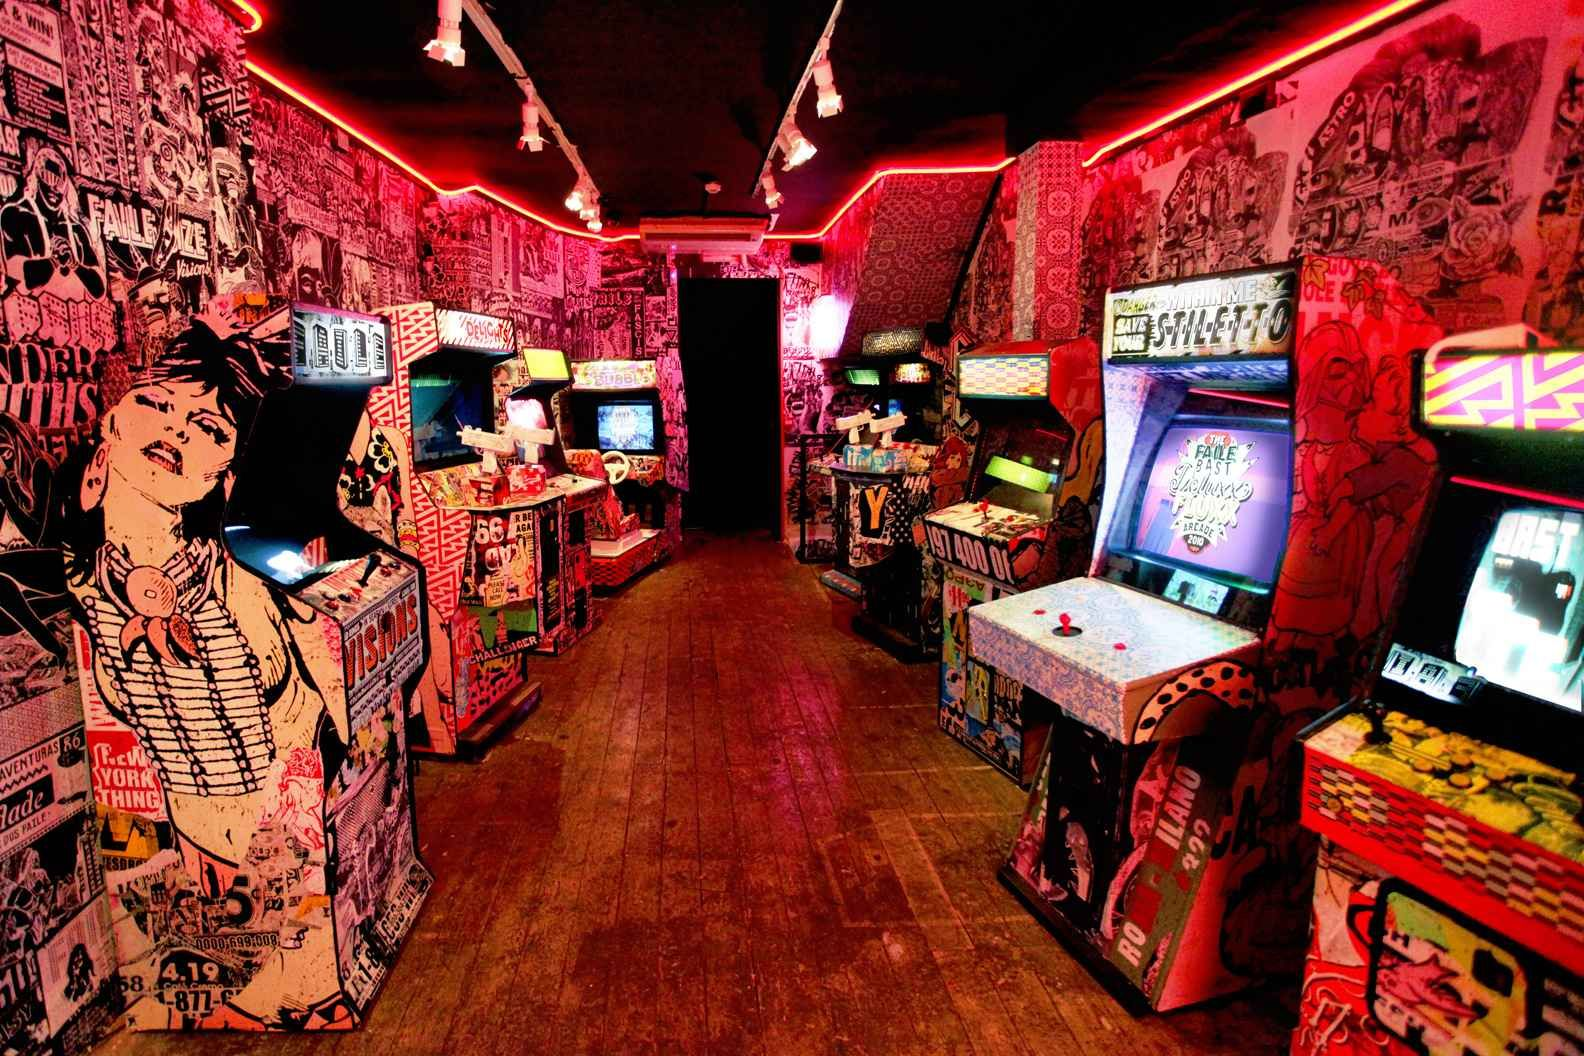 Cool integrated wall designs onto arcade